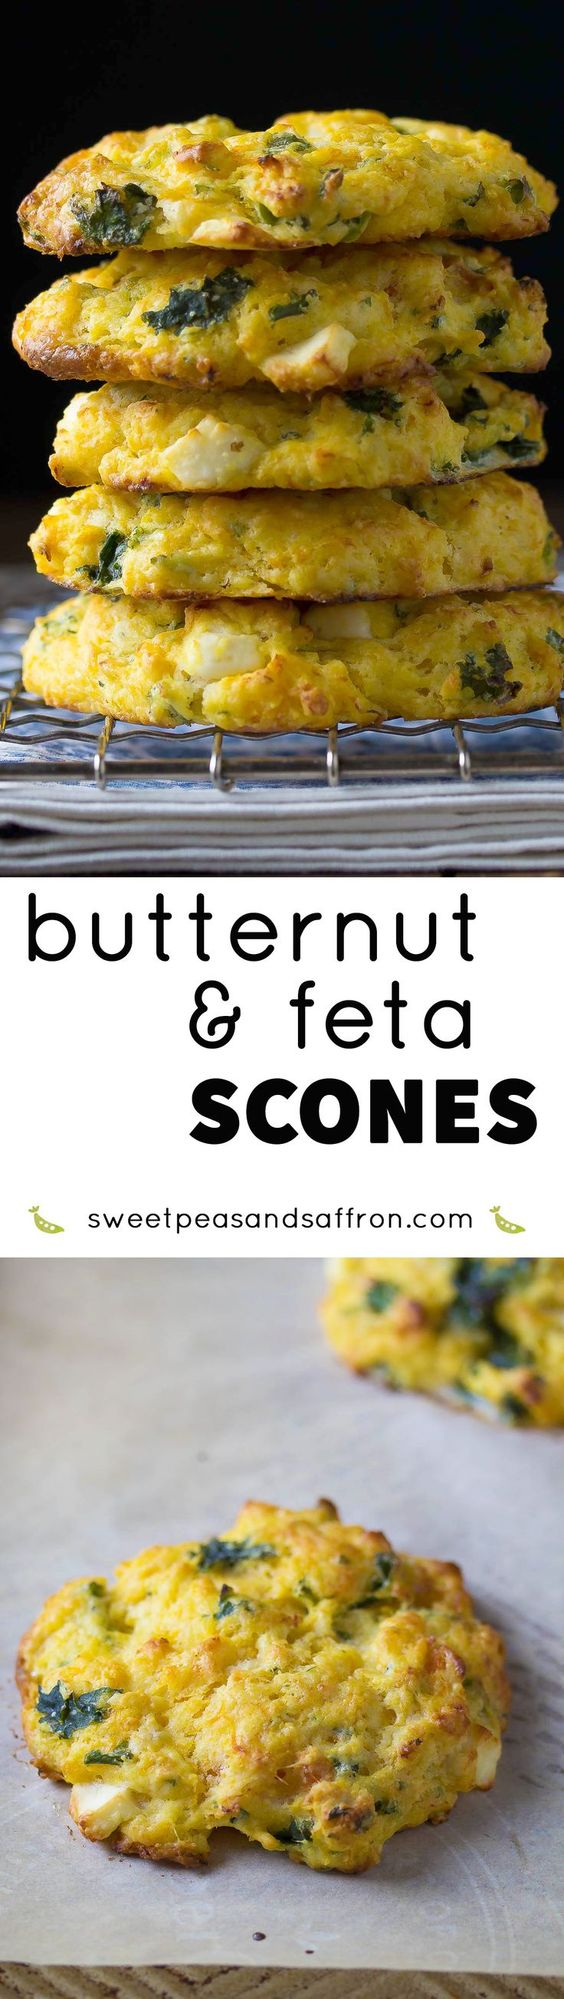 Butternut Squash Scones with Spinach and Feta